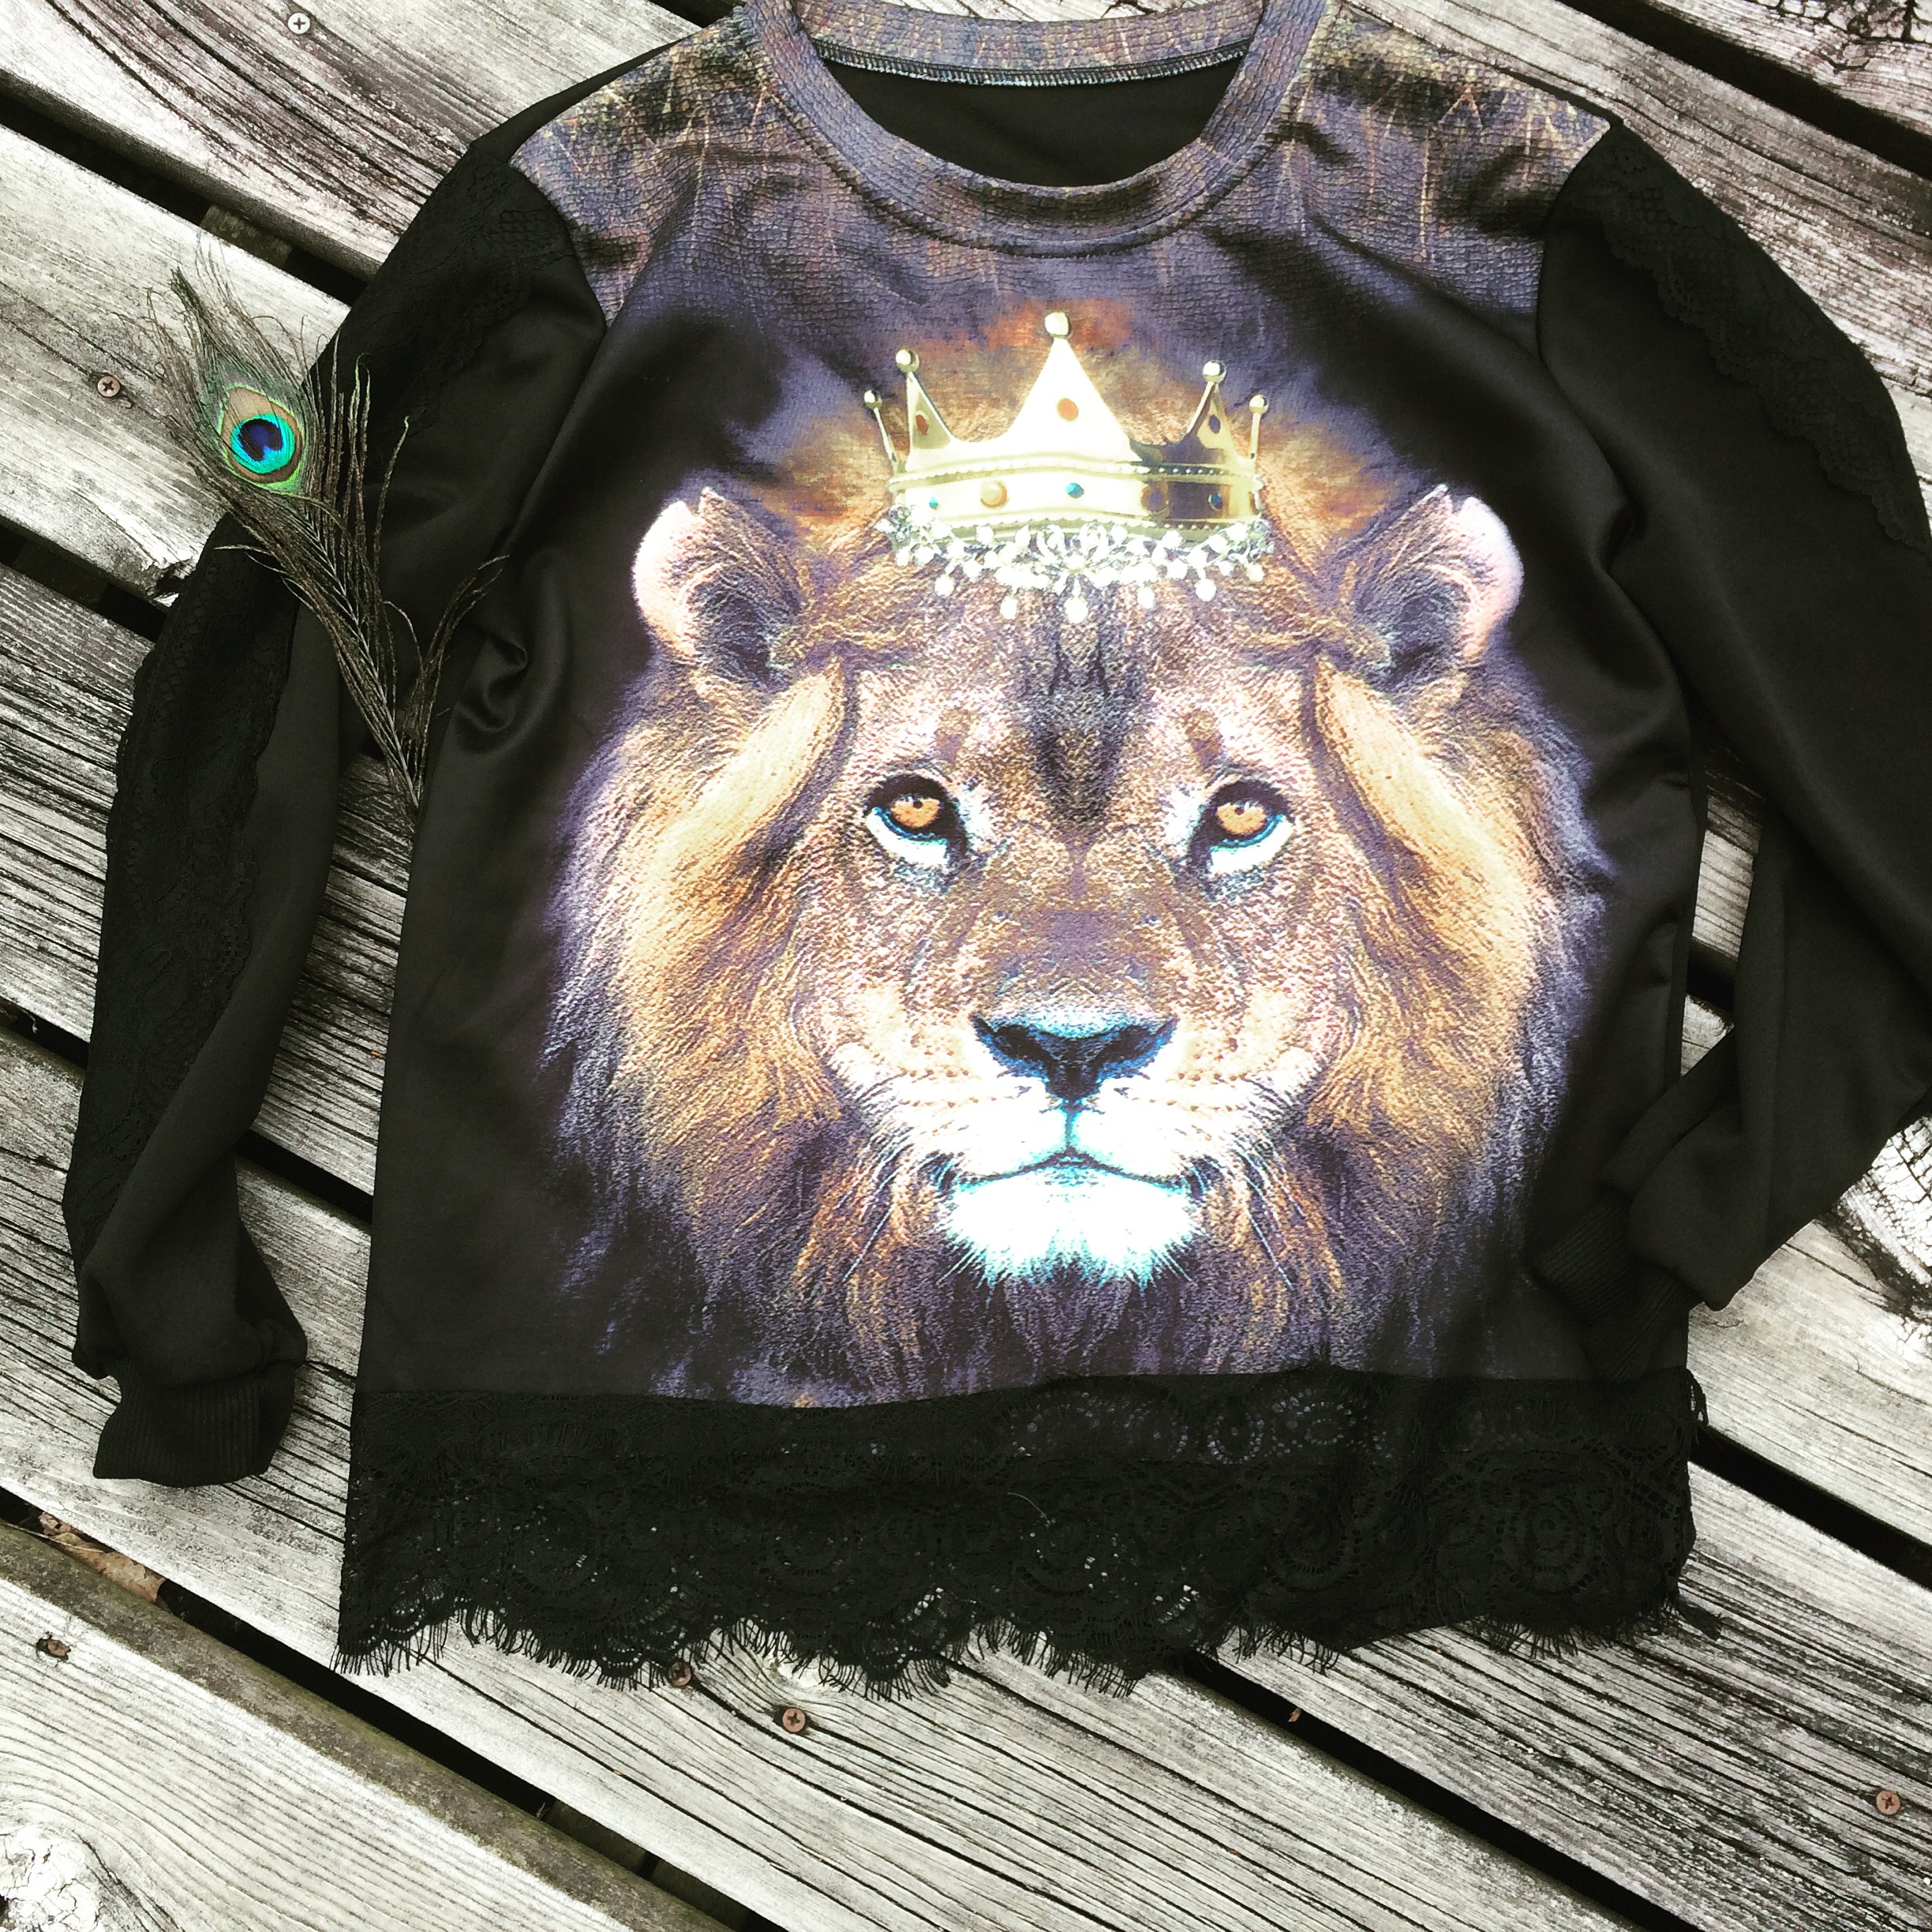 """As a girl who loves to online shop for myself and for my clients   Ima P. eacock   is an amazing option! The pieces are incredibly unique and super affordable. The two pieces I just had to style was the  blazer cape  and  lion long sleeve top !   About   What: Online store- street wear, urban, city chic """"Wear"""": Based in Chicago IL Why: To build a name and someday soon open a brick and mortor.  The best part about Ima P. Eacock online boutique is the prices. Everything is very reasonable and unique at the same time. I search high and low for trendy inexpensive pieces.    """"Like""""   or   """"Follow""""   them on social media!    https://www.facebook.com/Imapeacockchicago      https://instagram.com/ima_p._eacock/     *Shop Online and use code:    """"KSStyle15""""   for  15% off  your order   www.imapeacock.com        Stay Stylish Chicago,     Katie"""